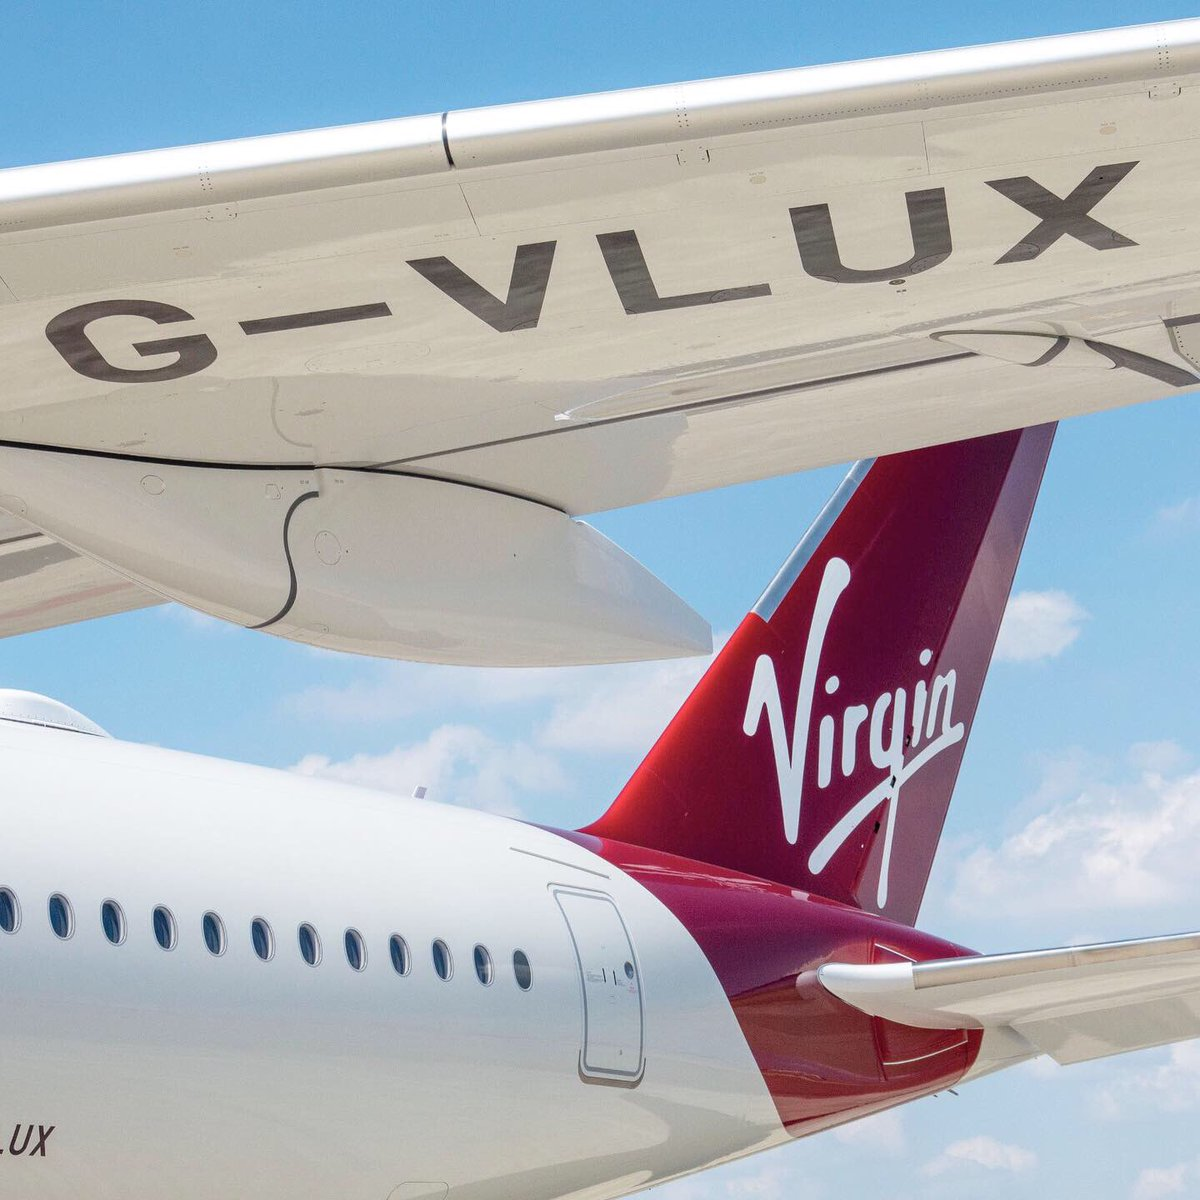 Welcome to the family, Red Velvet 🍰✈️ If you want to follow G-VLUX home the flight number is VS835P. Planned departure from Toulouse Blagnac at 20:15 GMT+2, arriving at @Gatwick_Airport at 20:40 GMT+1 ✈️